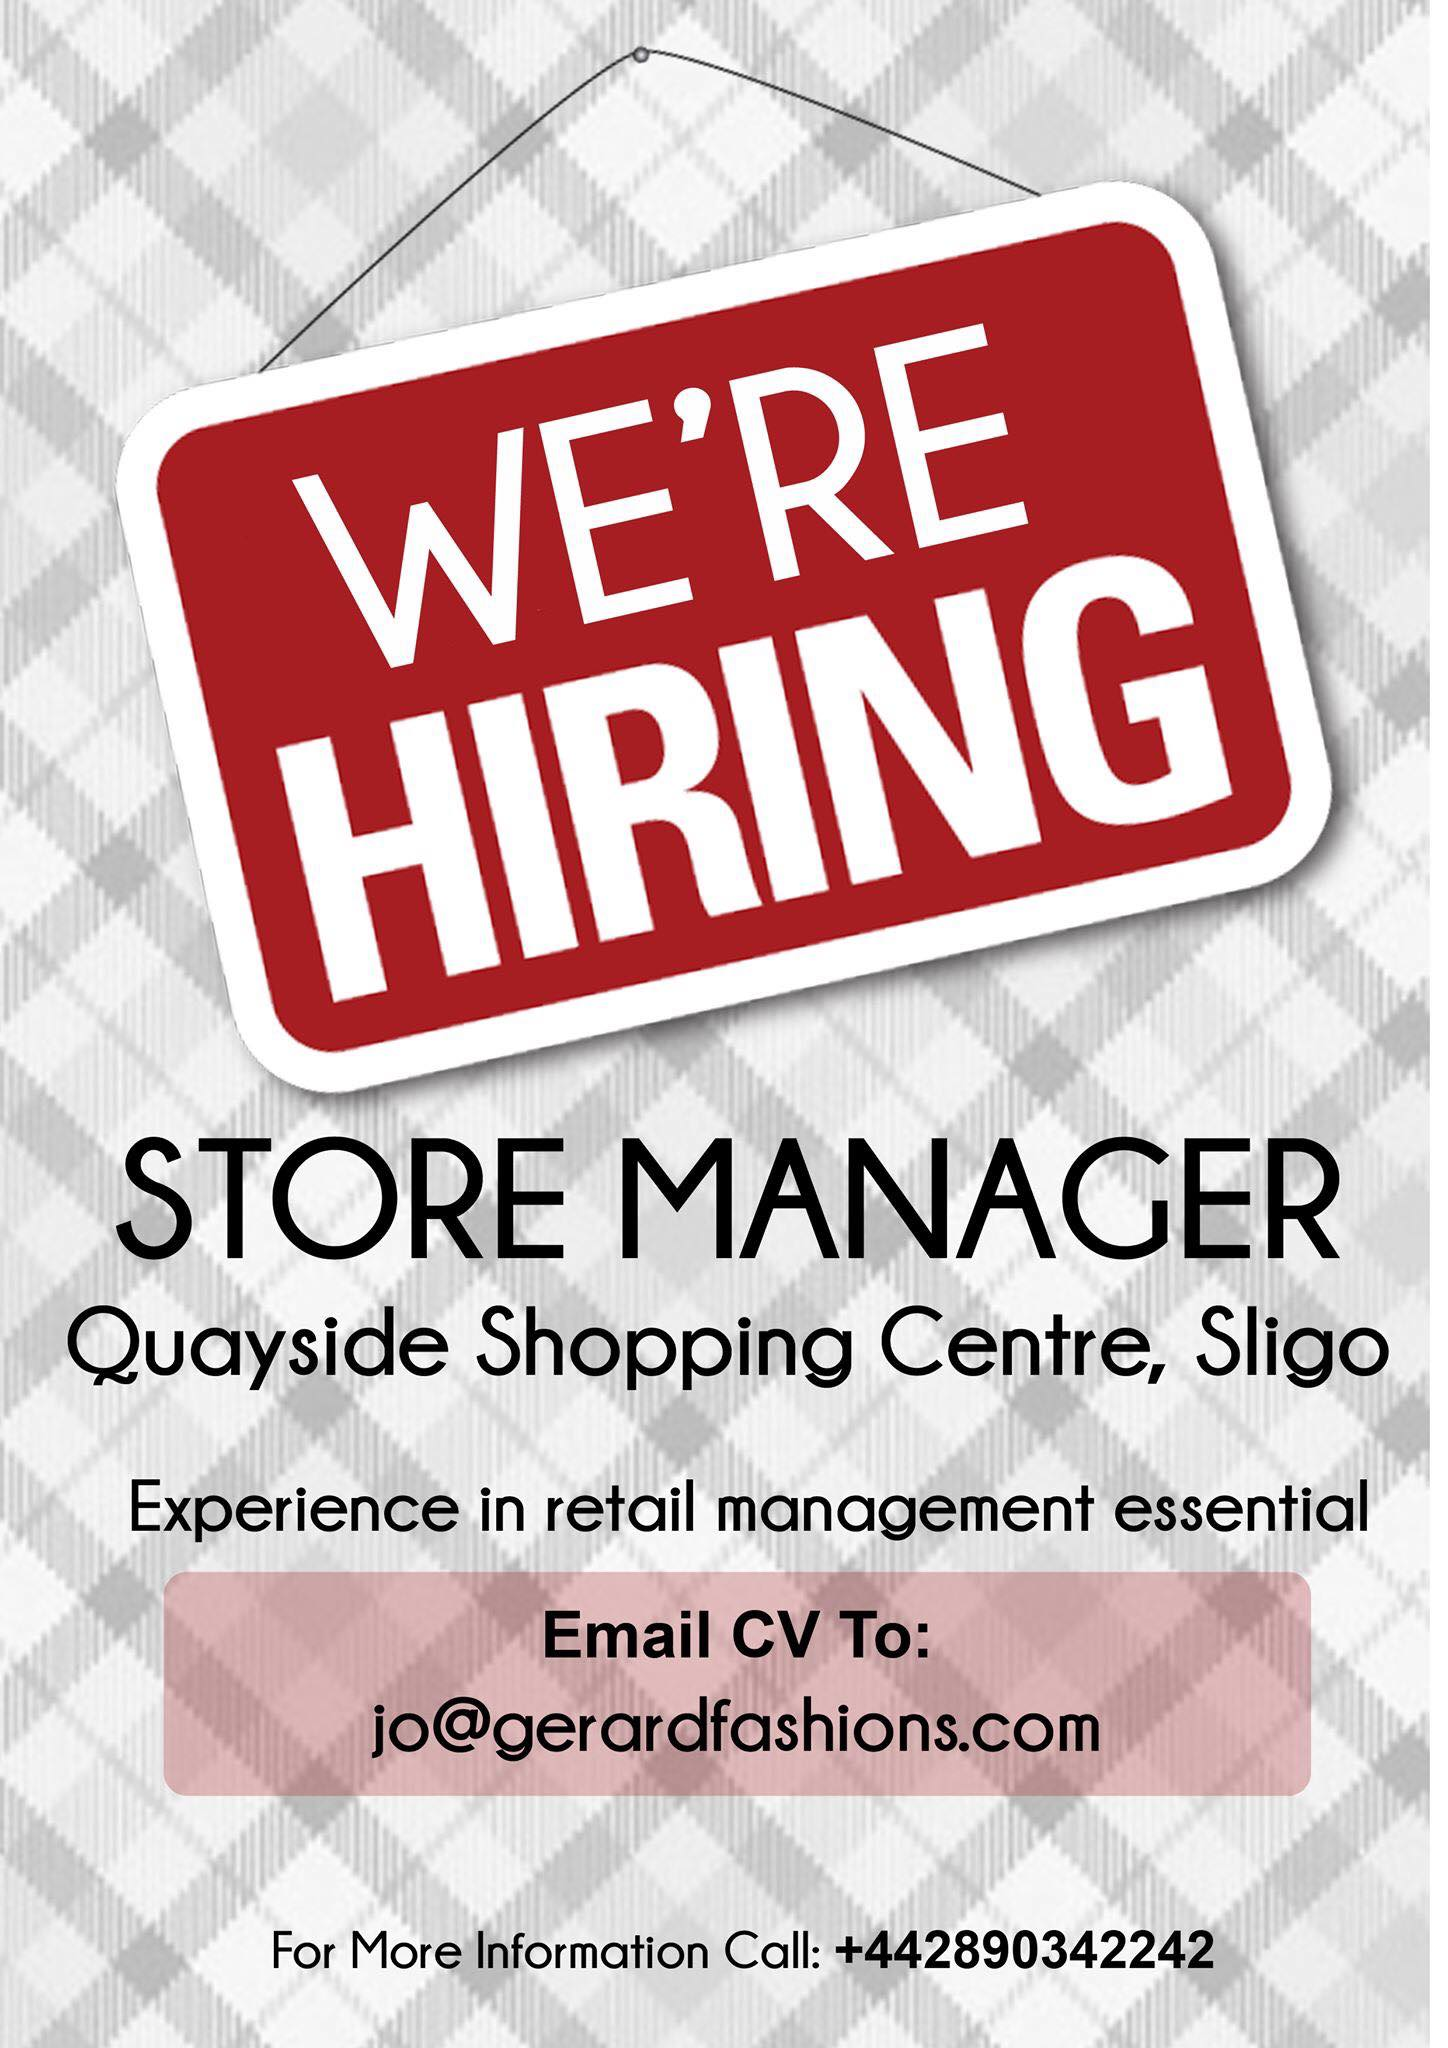 We're hiring - Store manager